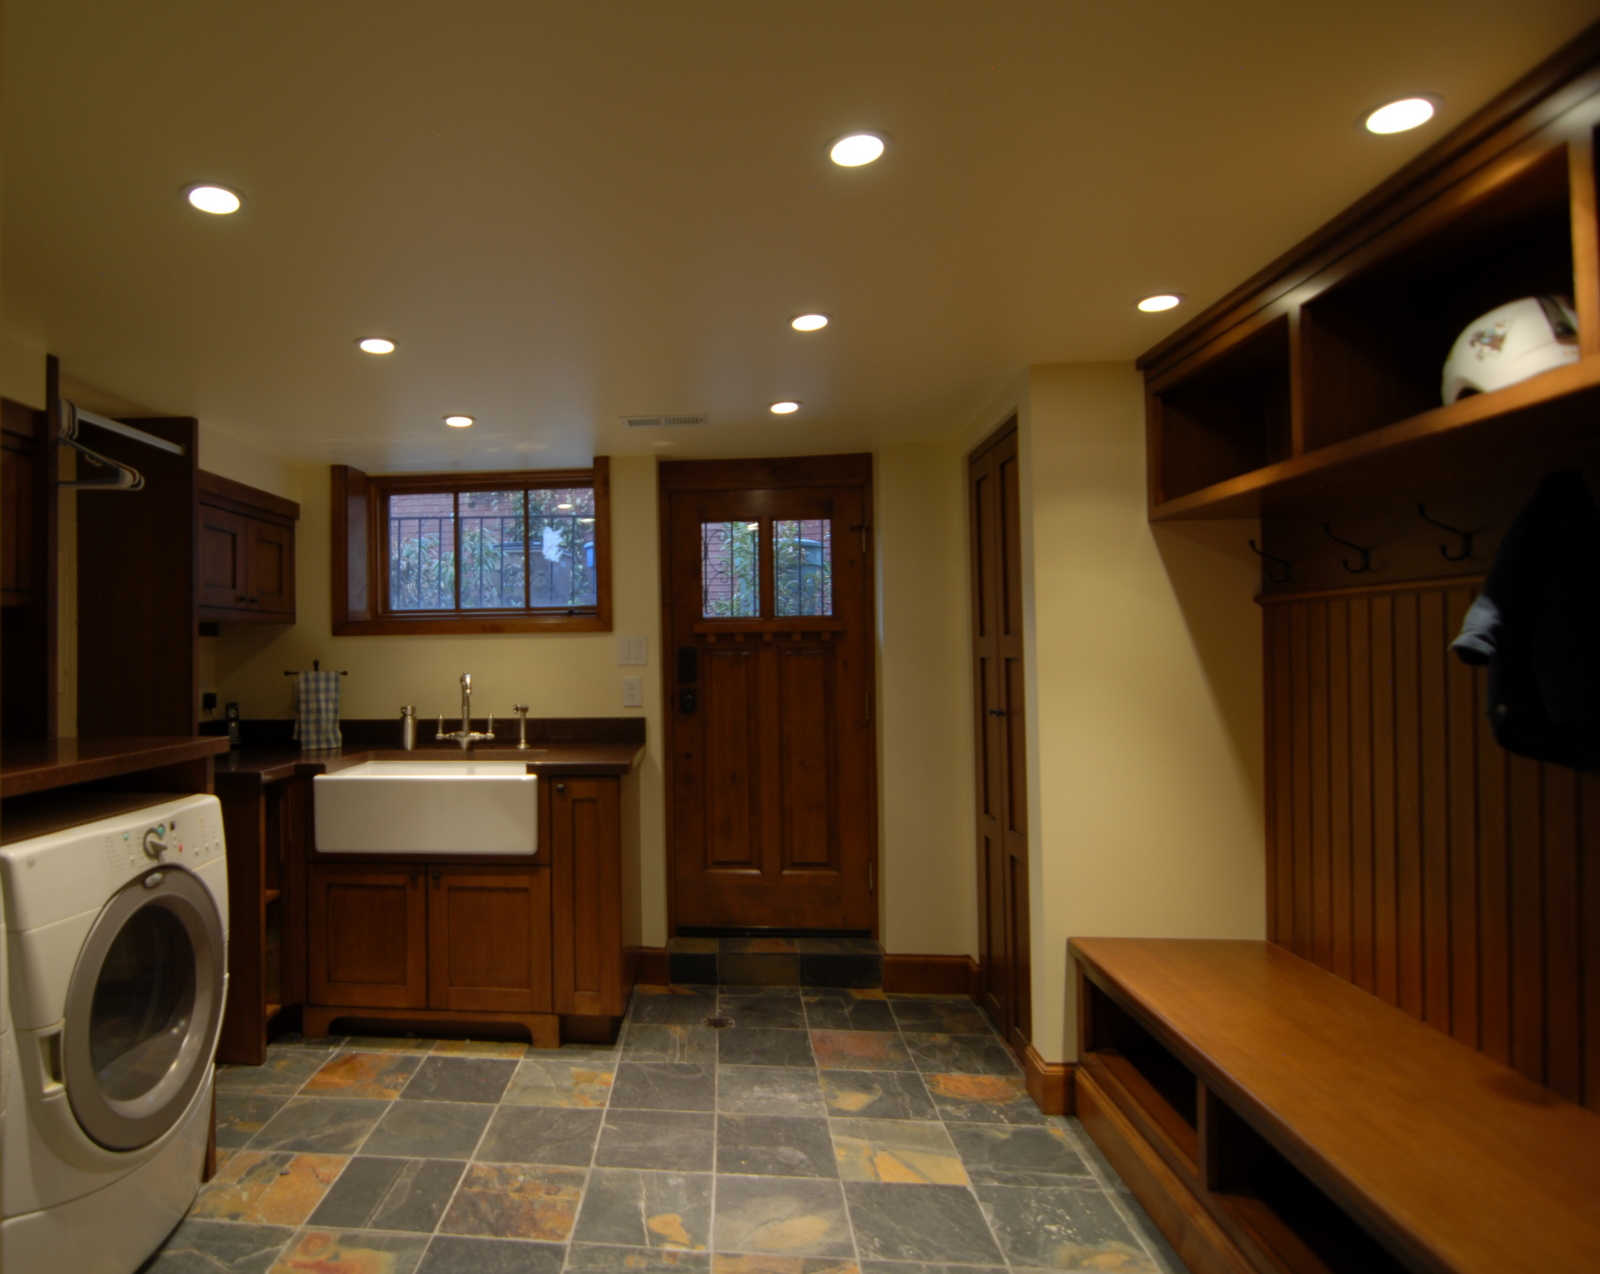 Laundry Room Basement In A Craftsman Home